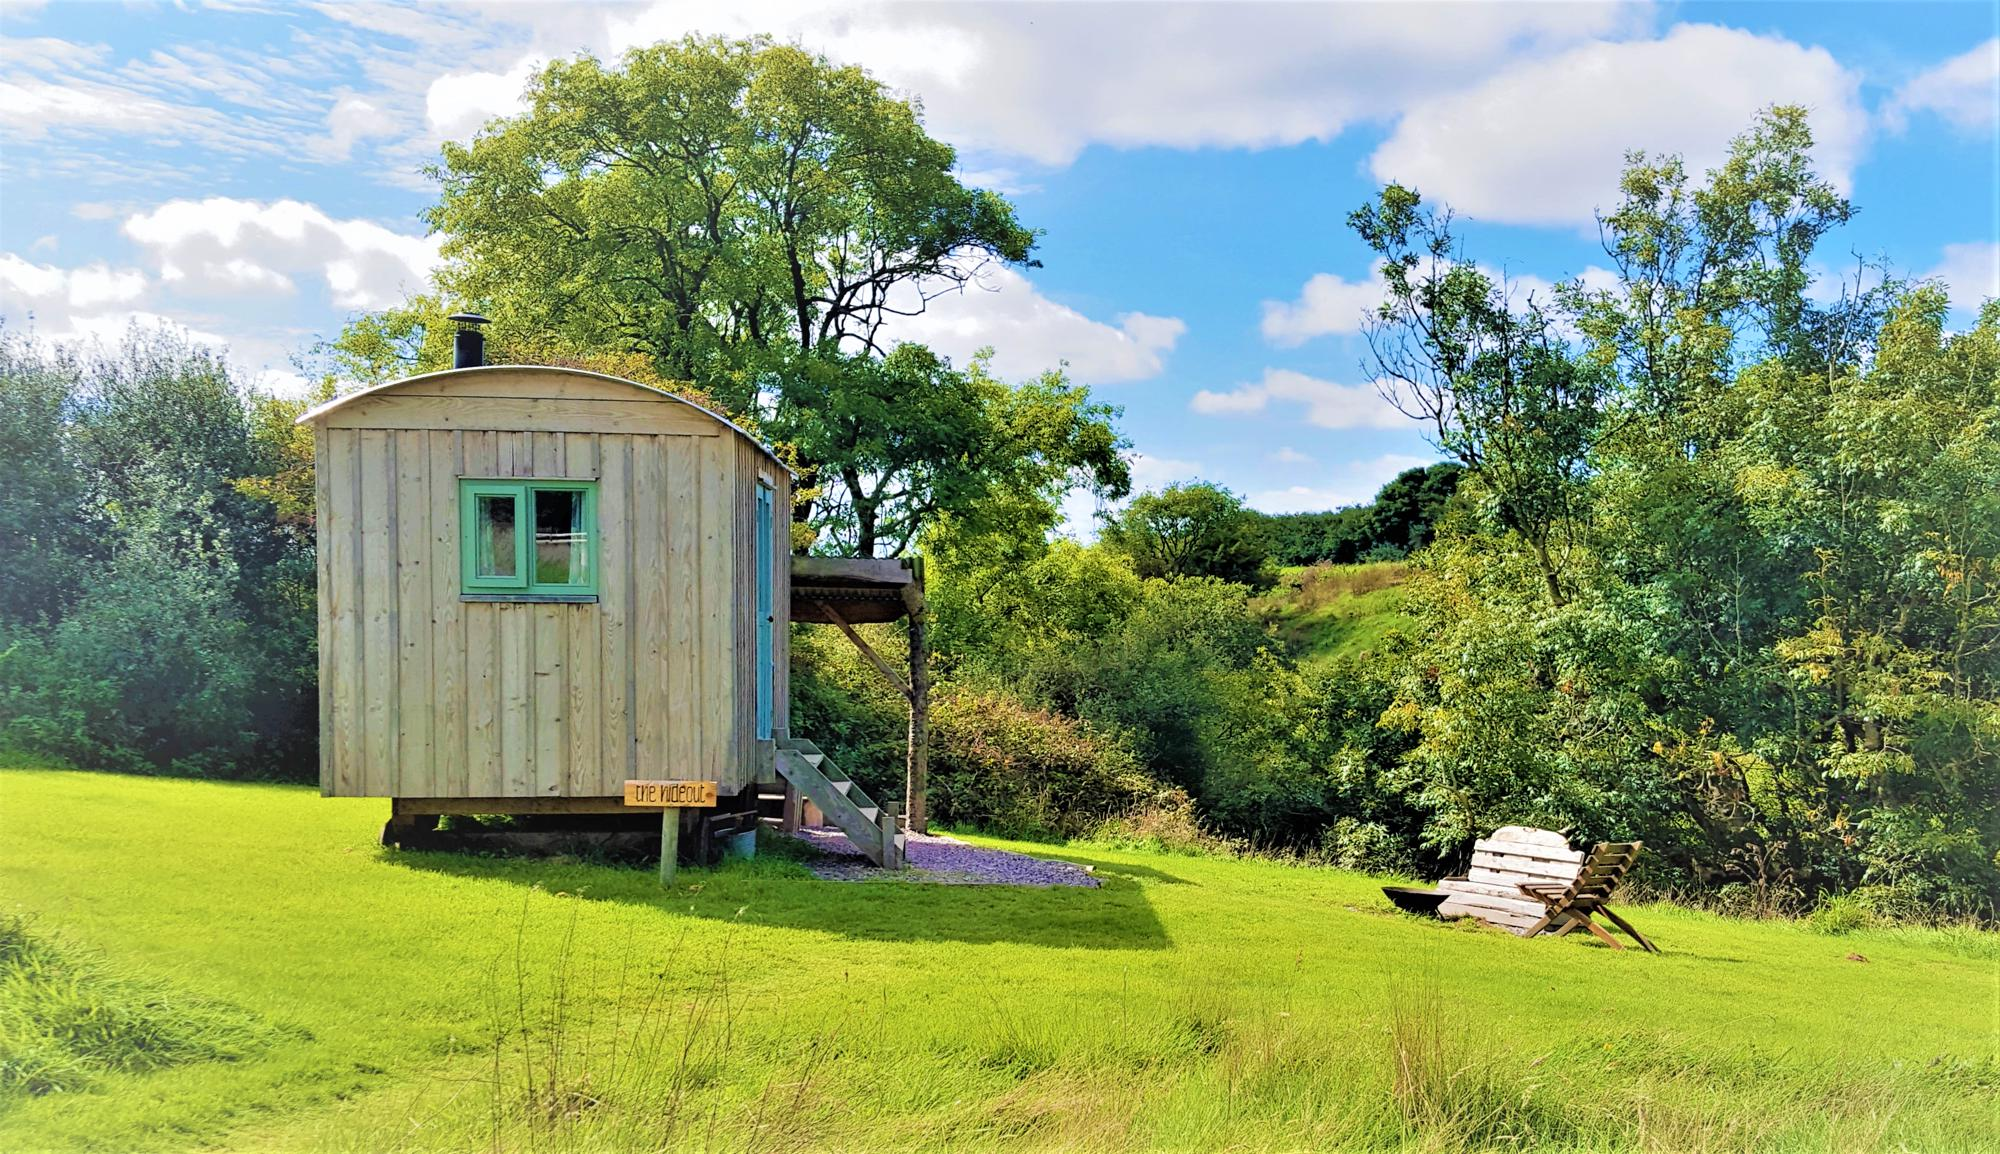 Campsites in England holidays at Glampingly